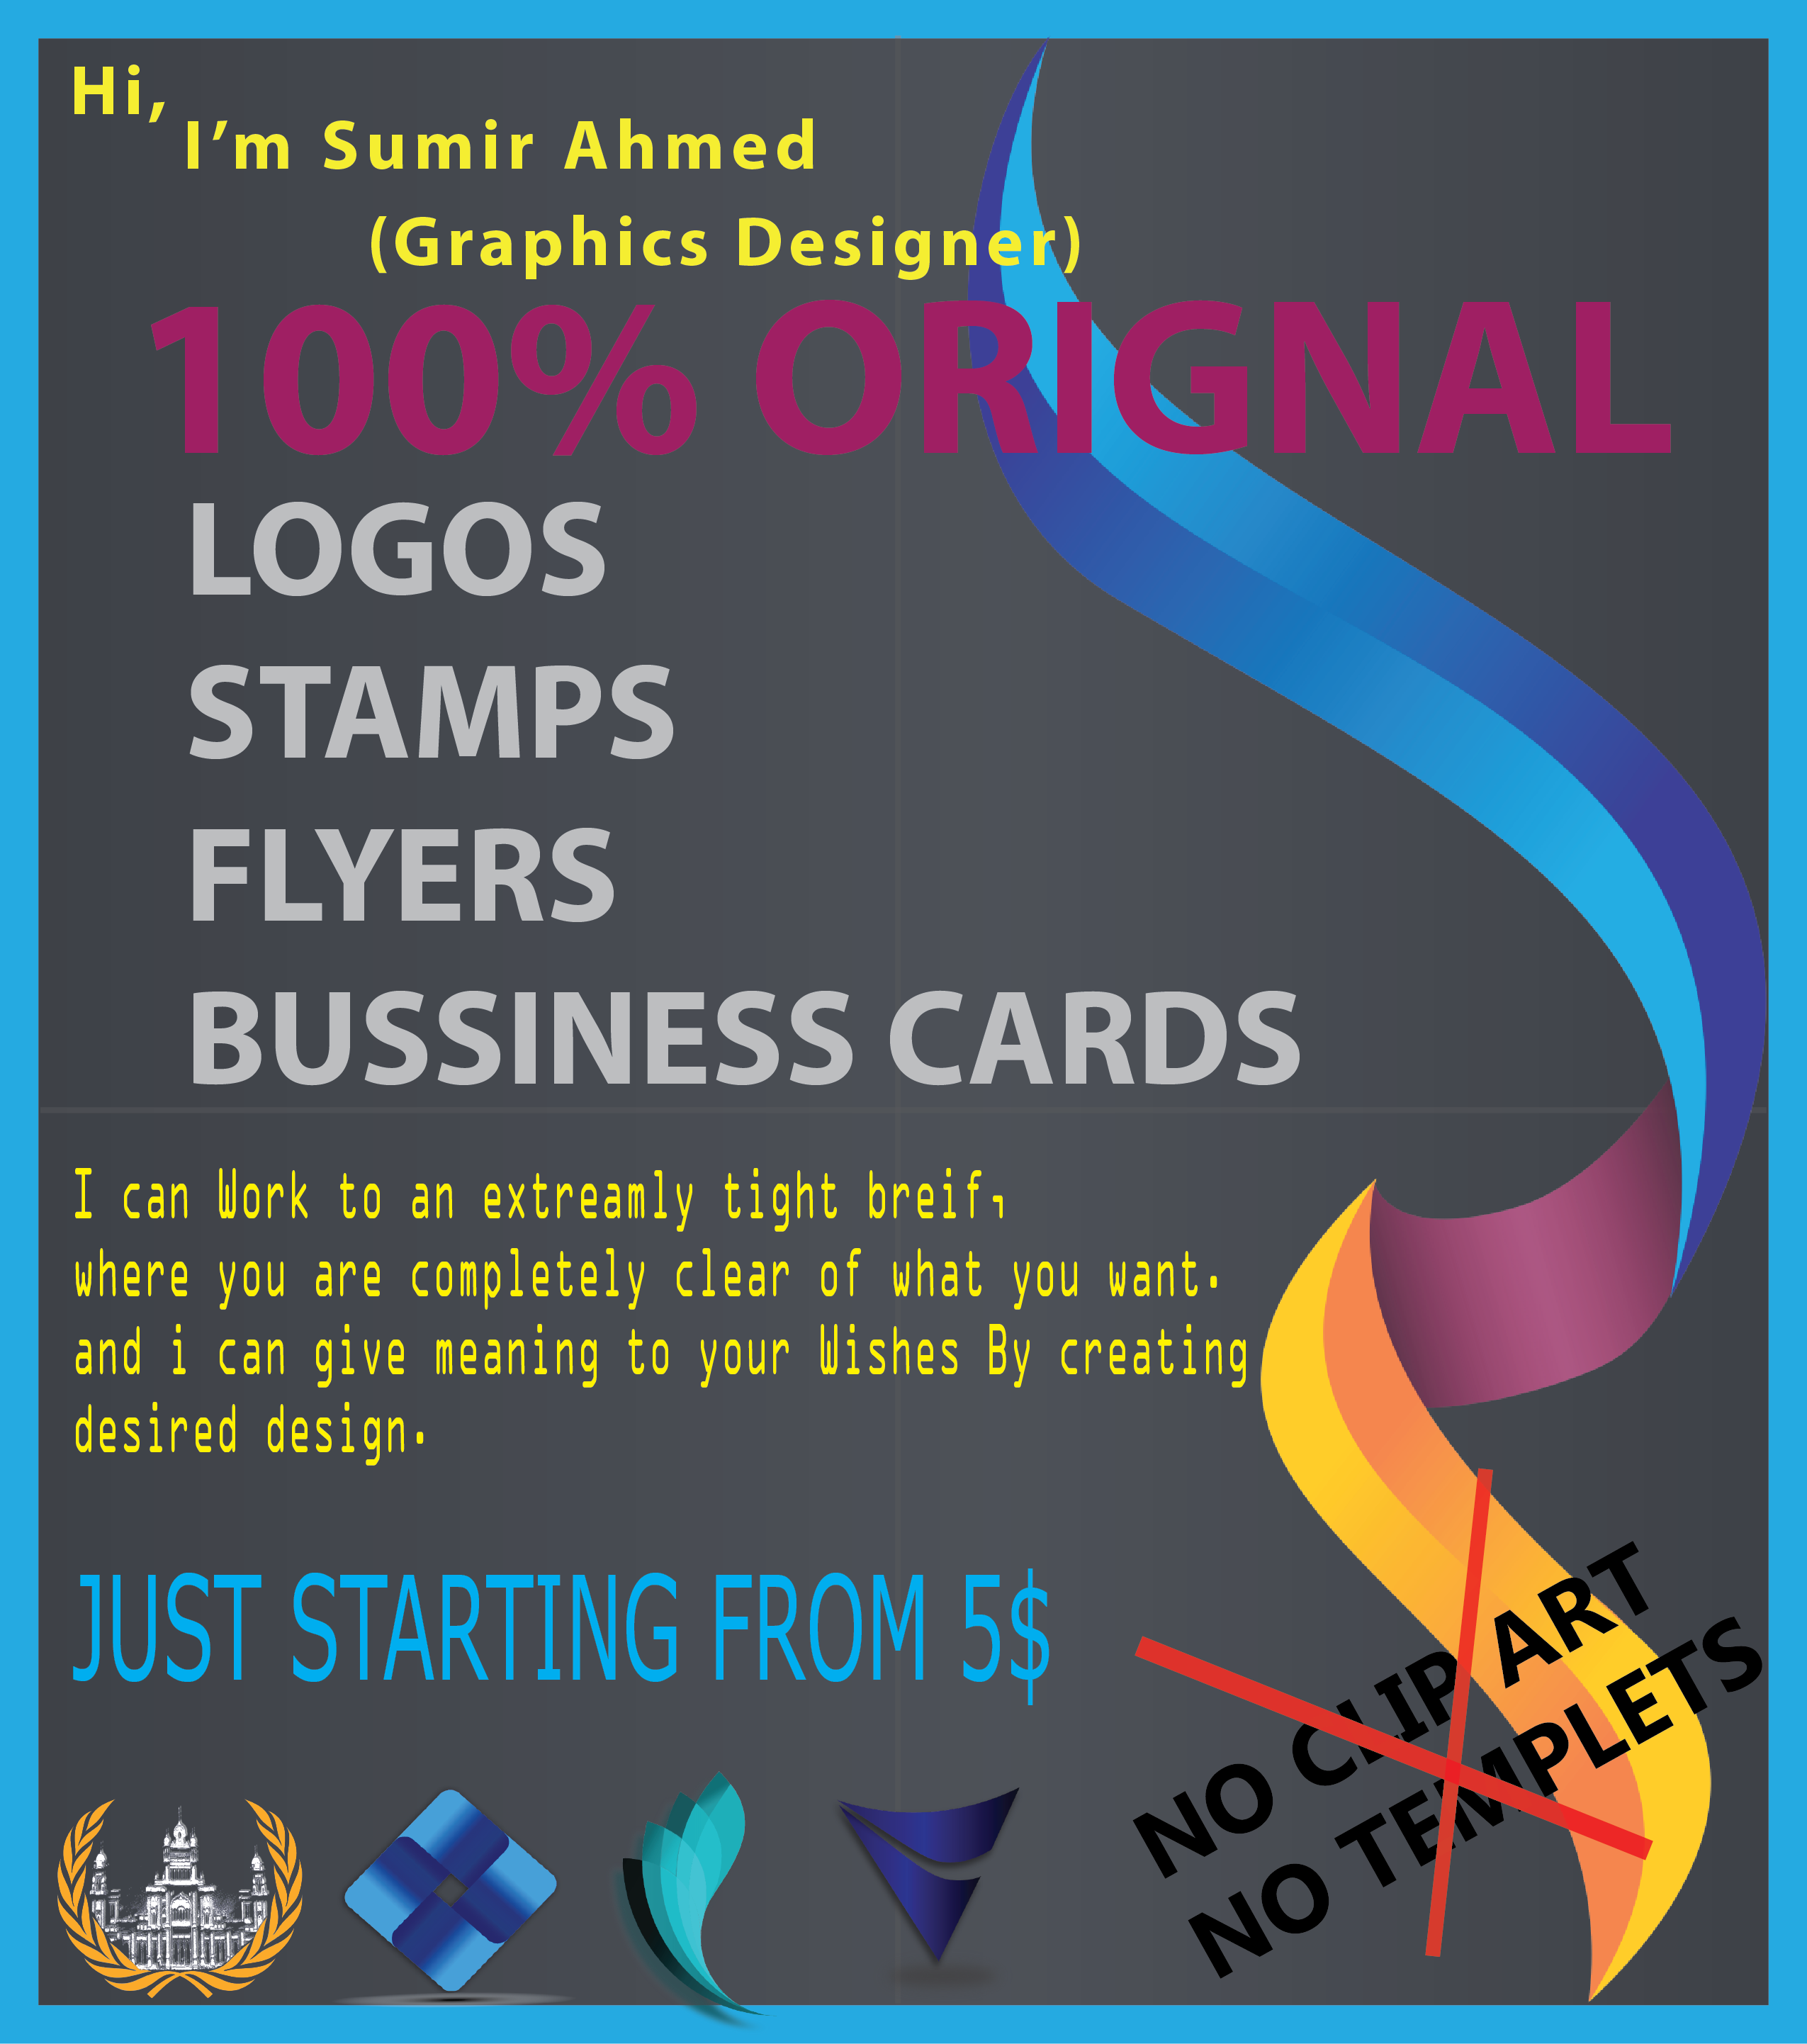 Design Logos / Business Cards Etc You want for $5 - PixelClerks